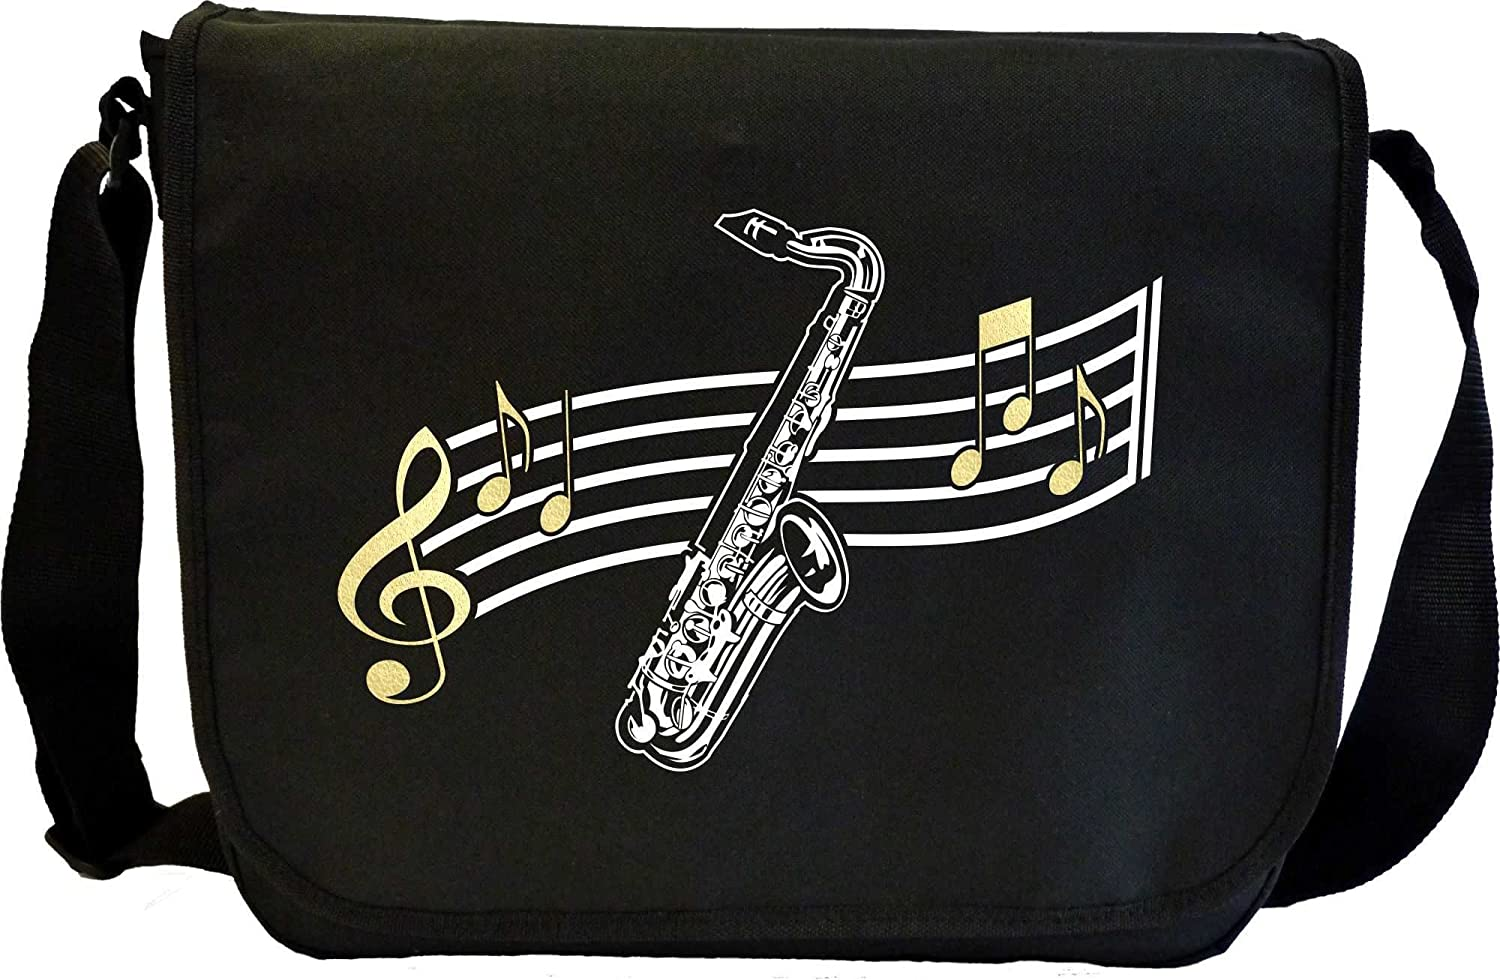 Saxophone Sax Tenor Curved Stave - Sheet Music Document Bag Sacoche de Musique MusicaliTee Sax1Tenor4_53_Stave_Bag_MG